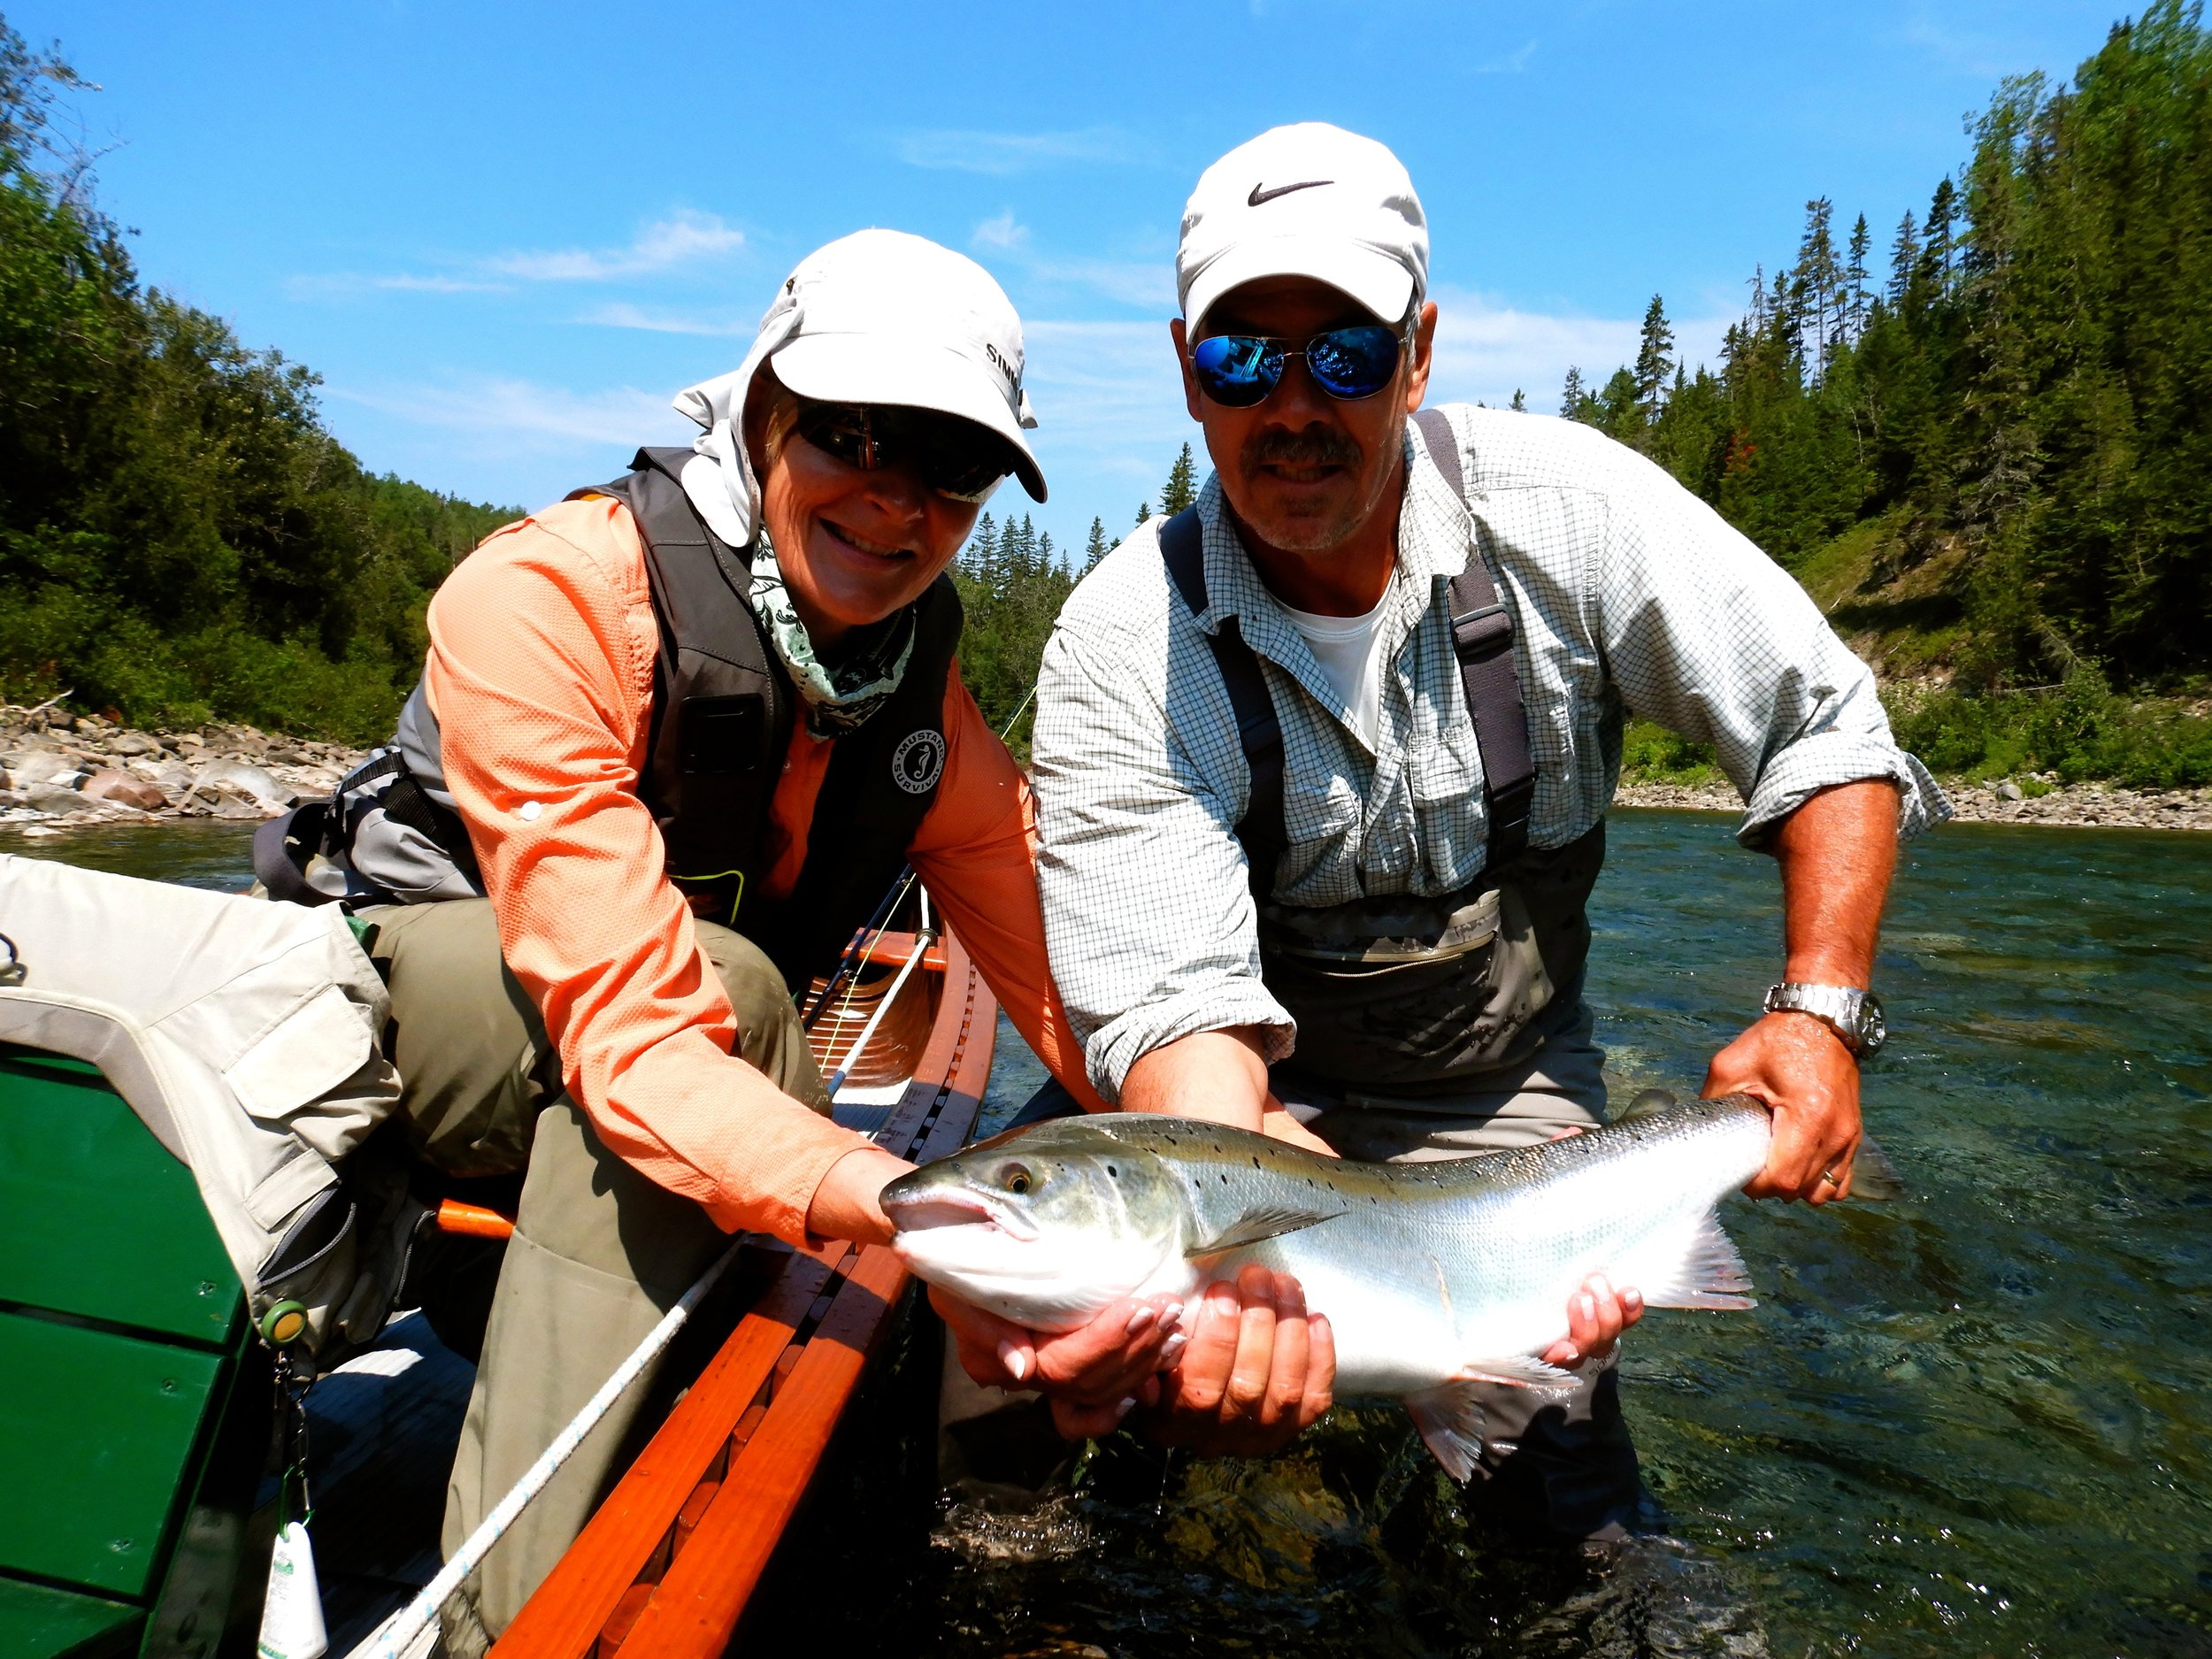 Salmon Lodge regular Steve Pelletier with his wife Jeannie on the Bonaventure, Nice one guys!